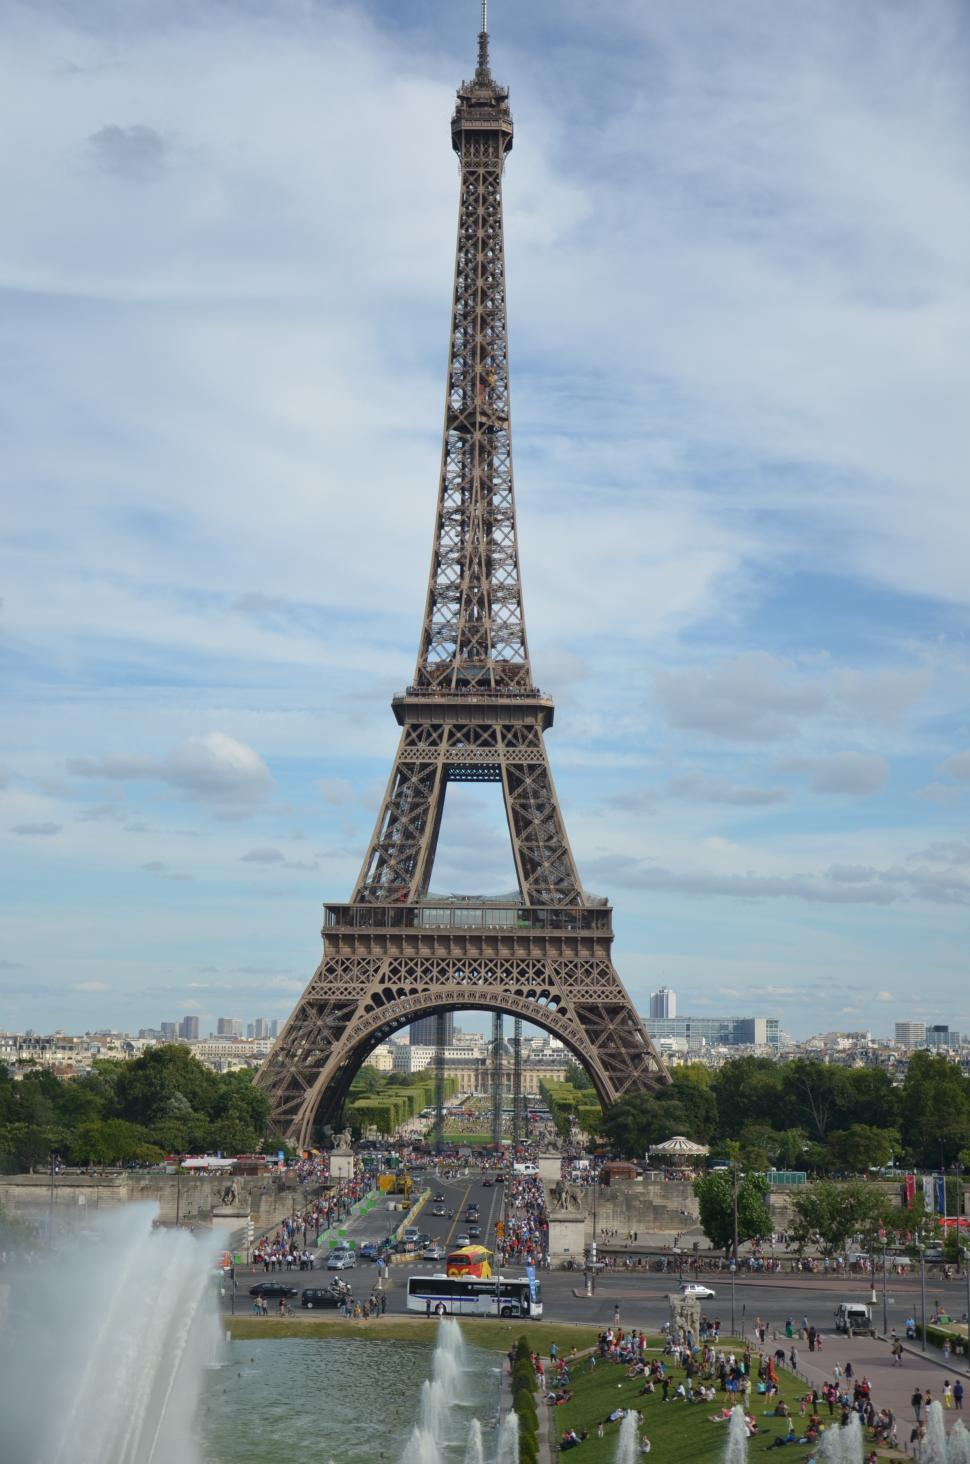 Download Free Stock HD Photo of Eiffel tower, Paris, France, Europe  Online